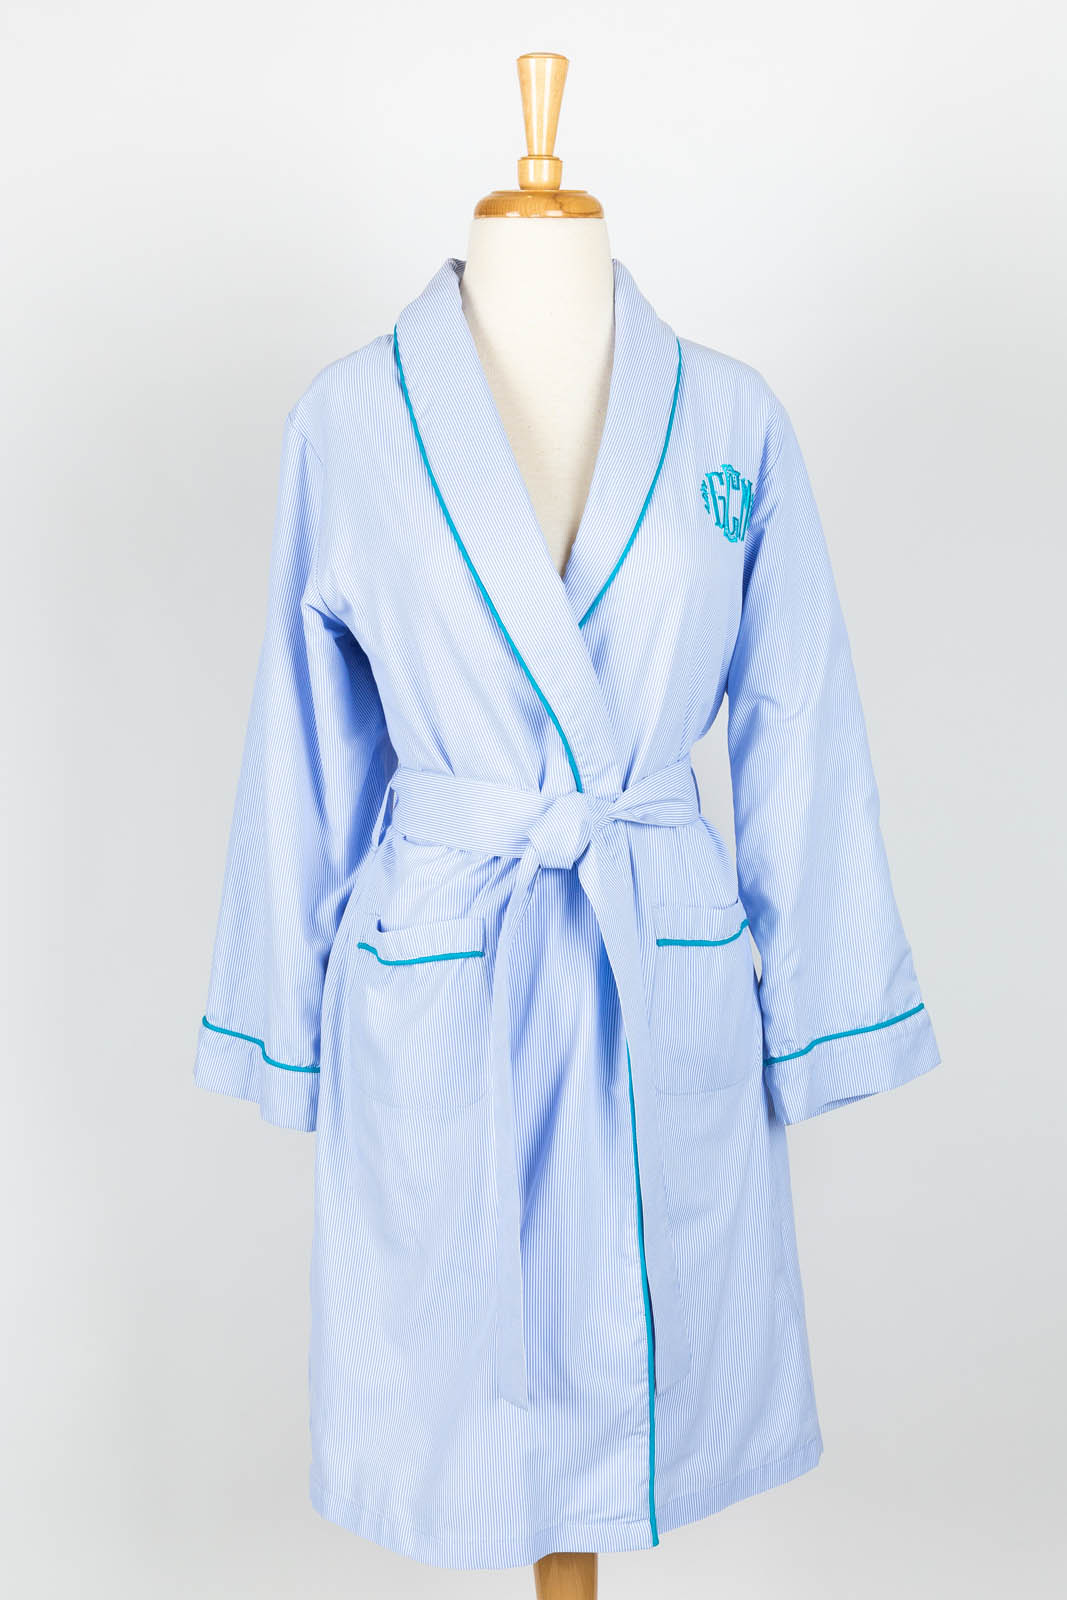 Blue pinstripe terry jersey lined short robe with Kim monogram